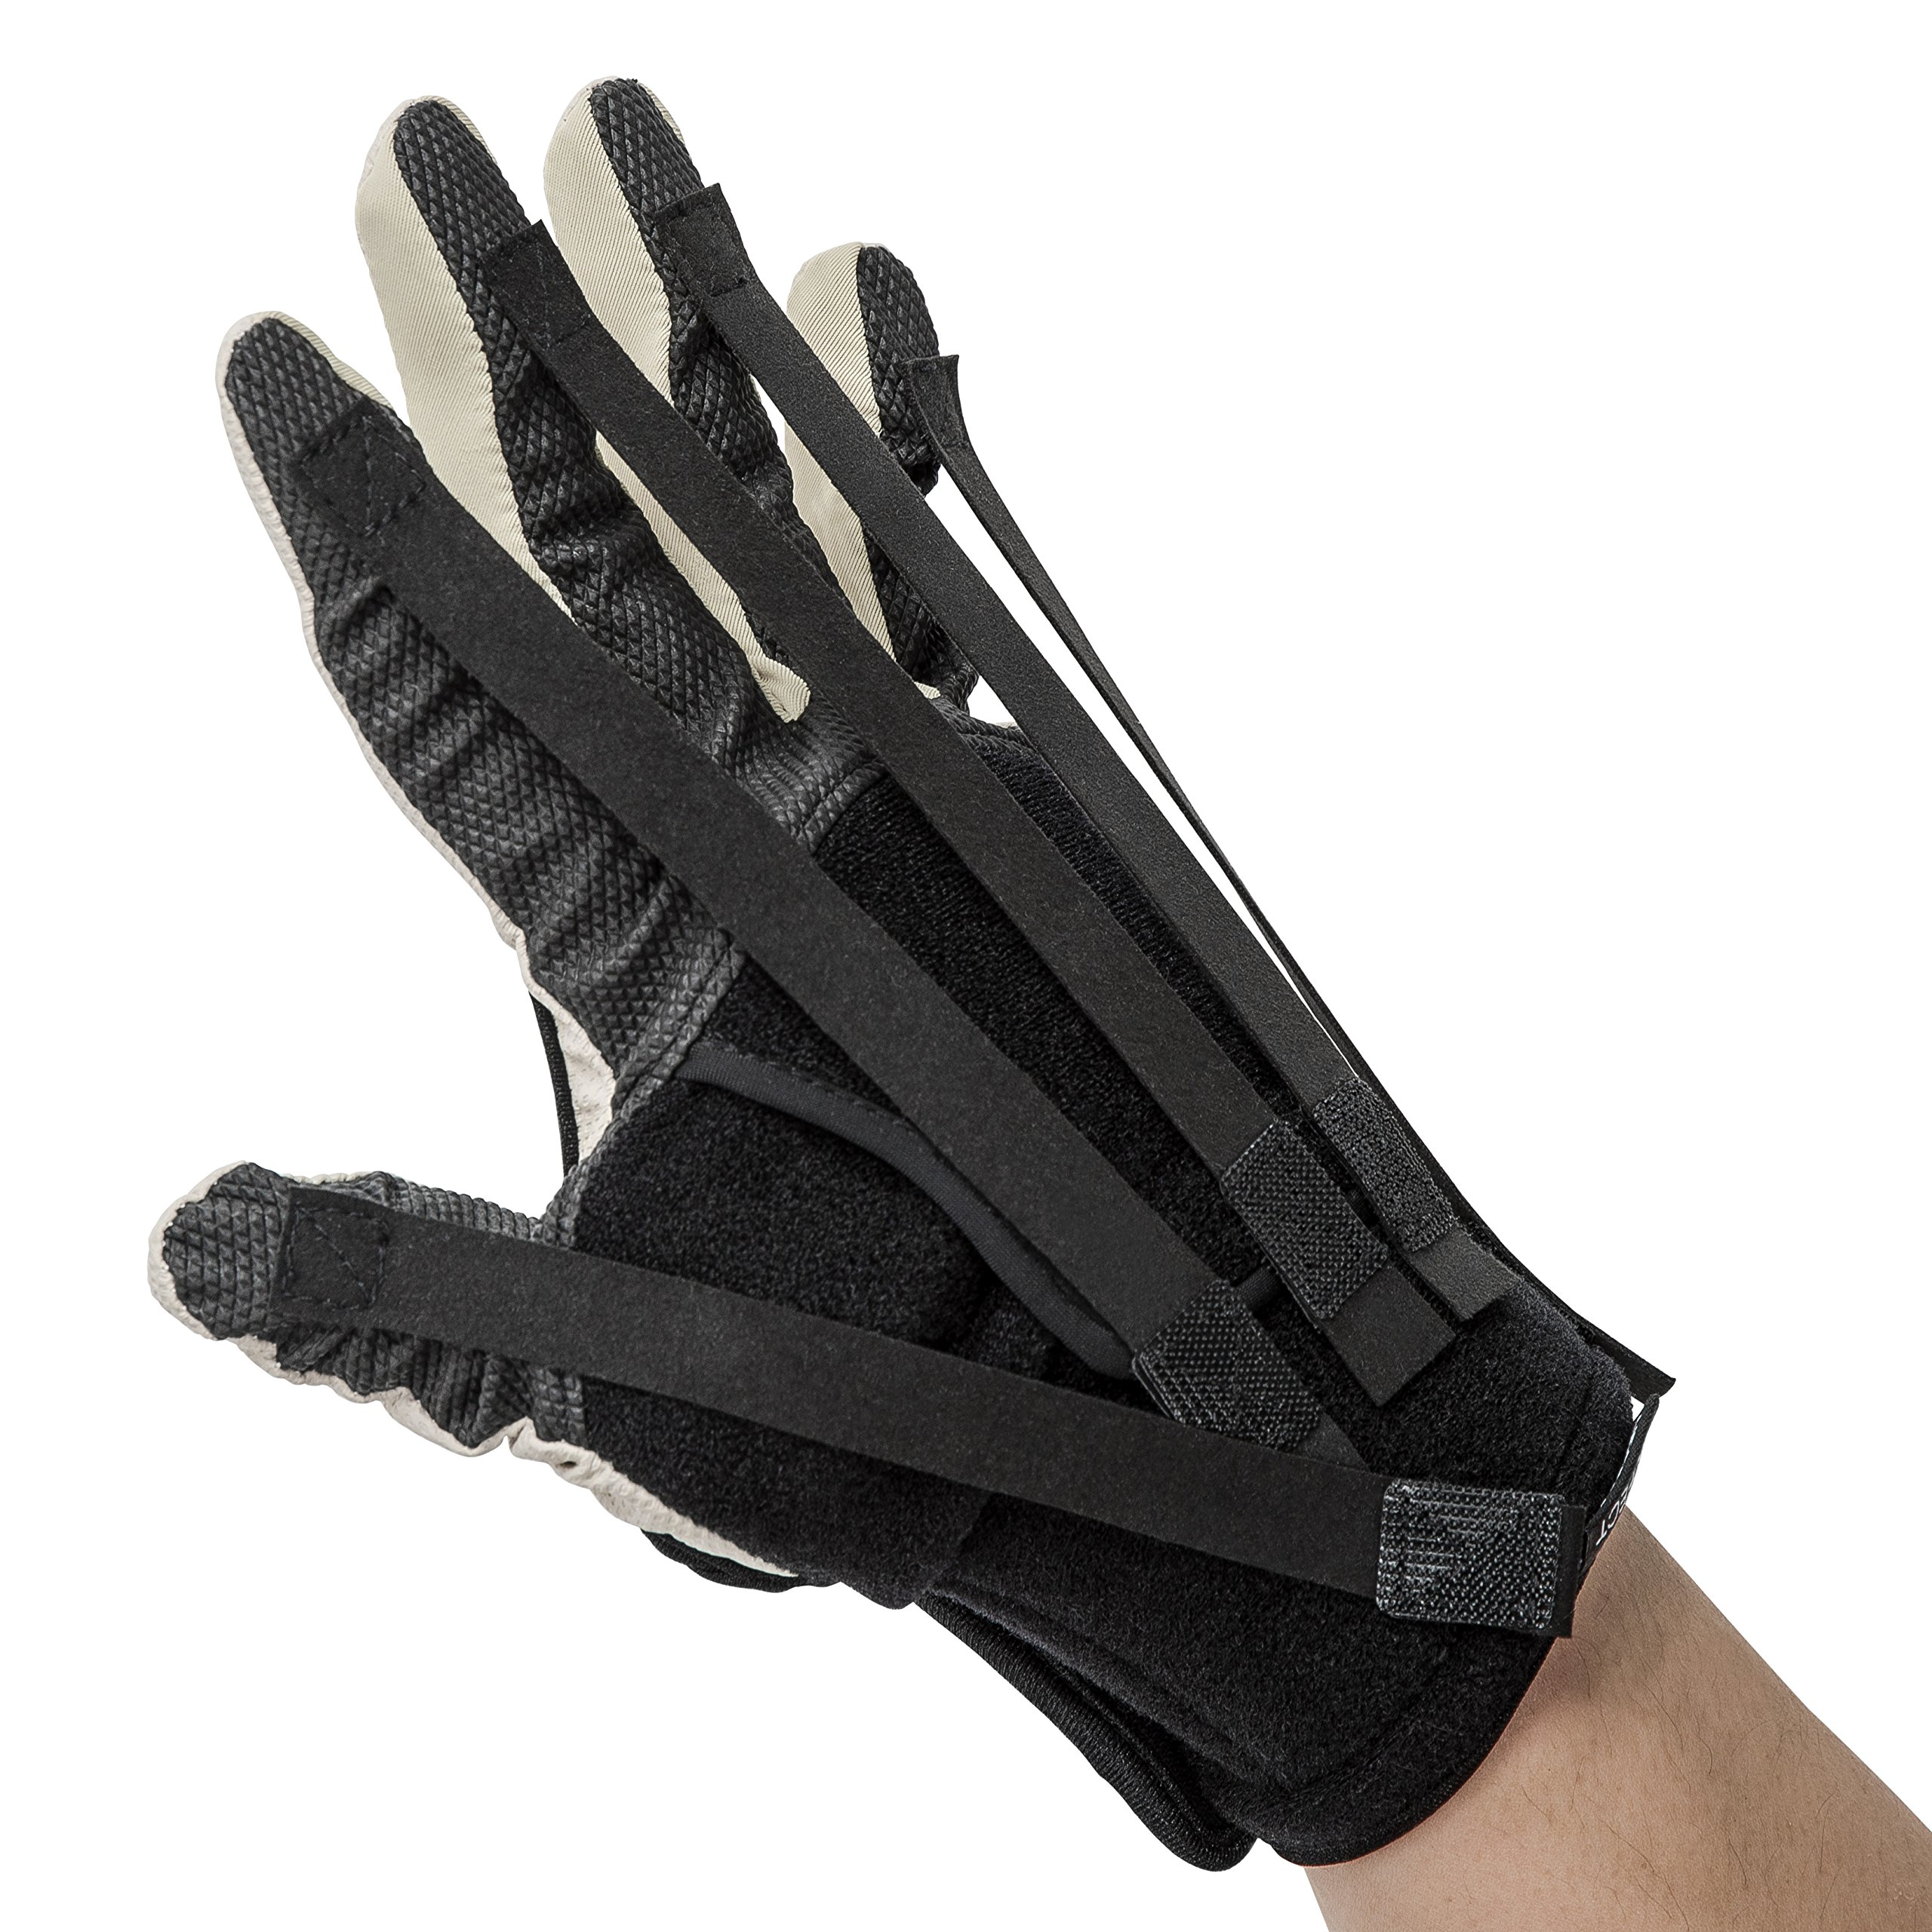 Finger Splint Brace Hand Orthosis Stroke Hemiplegia Hand Wrist Rehabilitation Gloves - NEOFECT Extender (Small, Right)